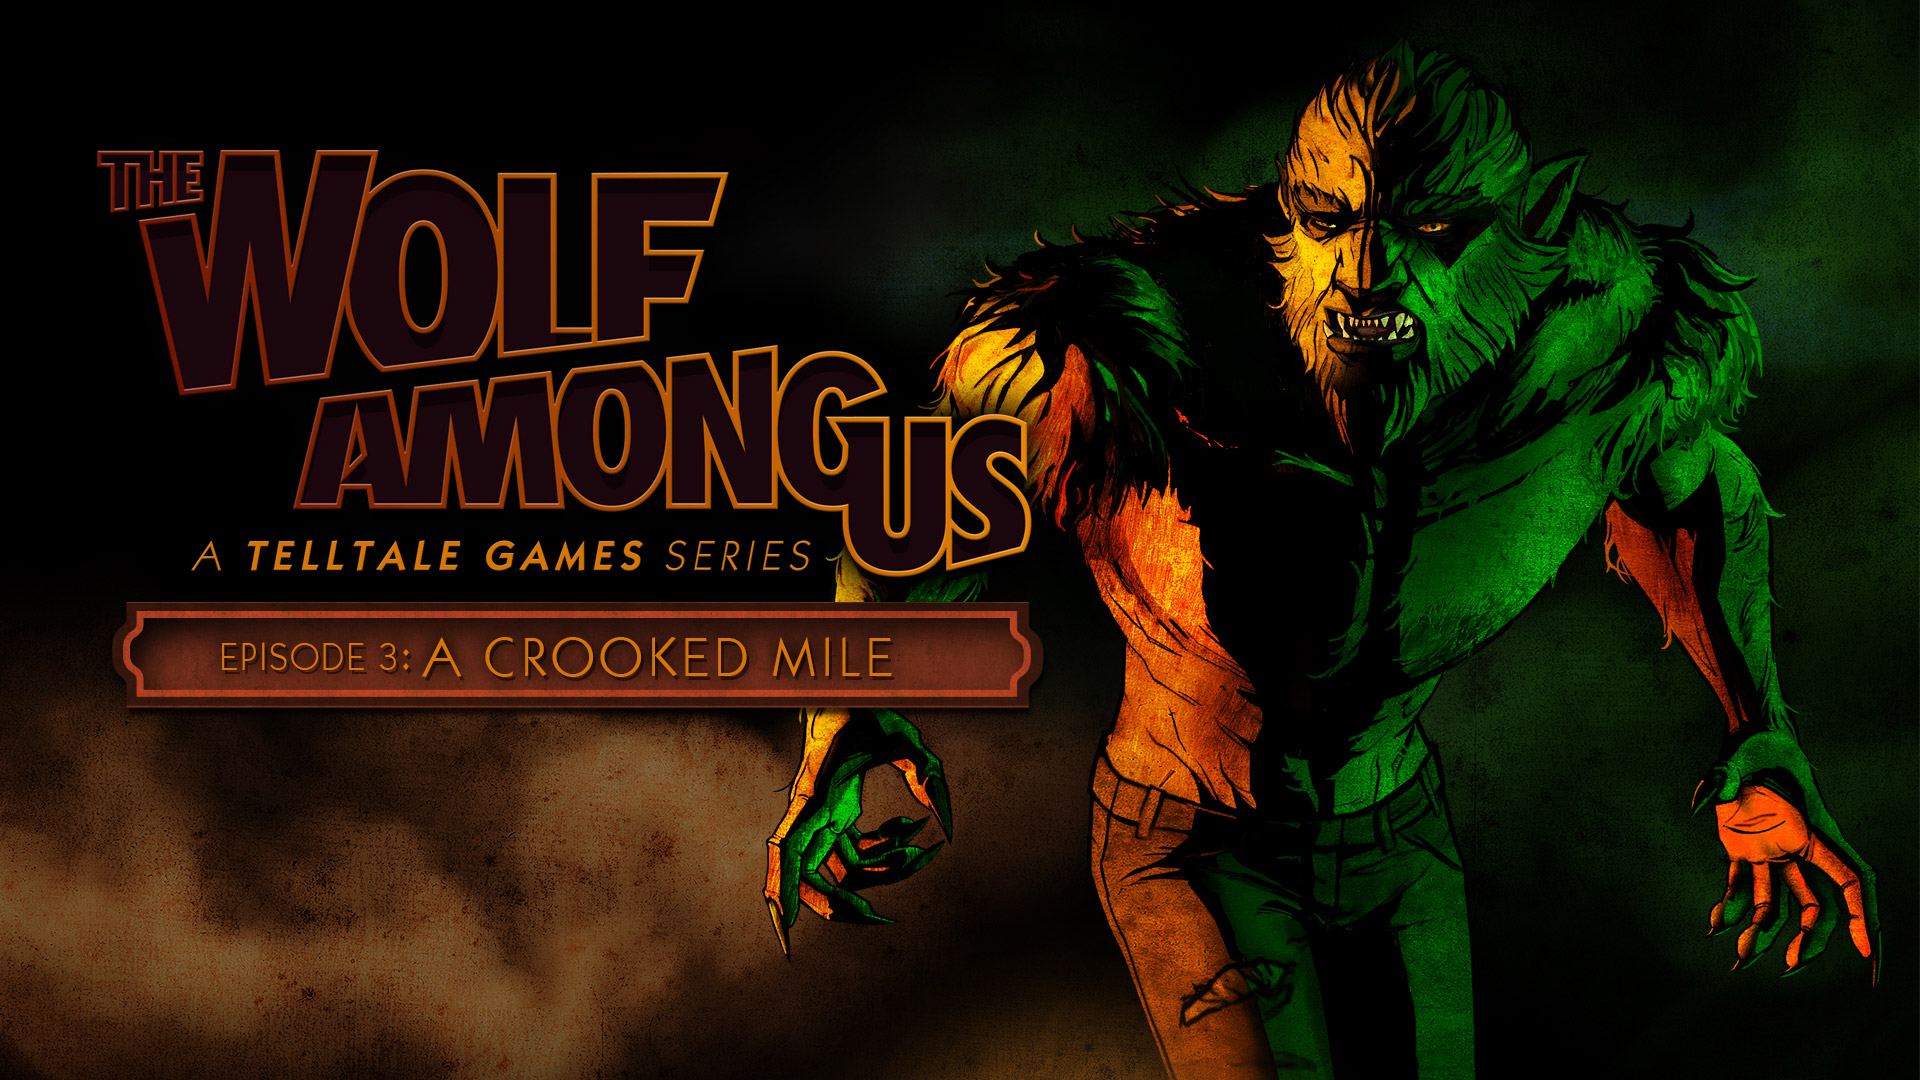 The Wolf Among Us wallpaper 4